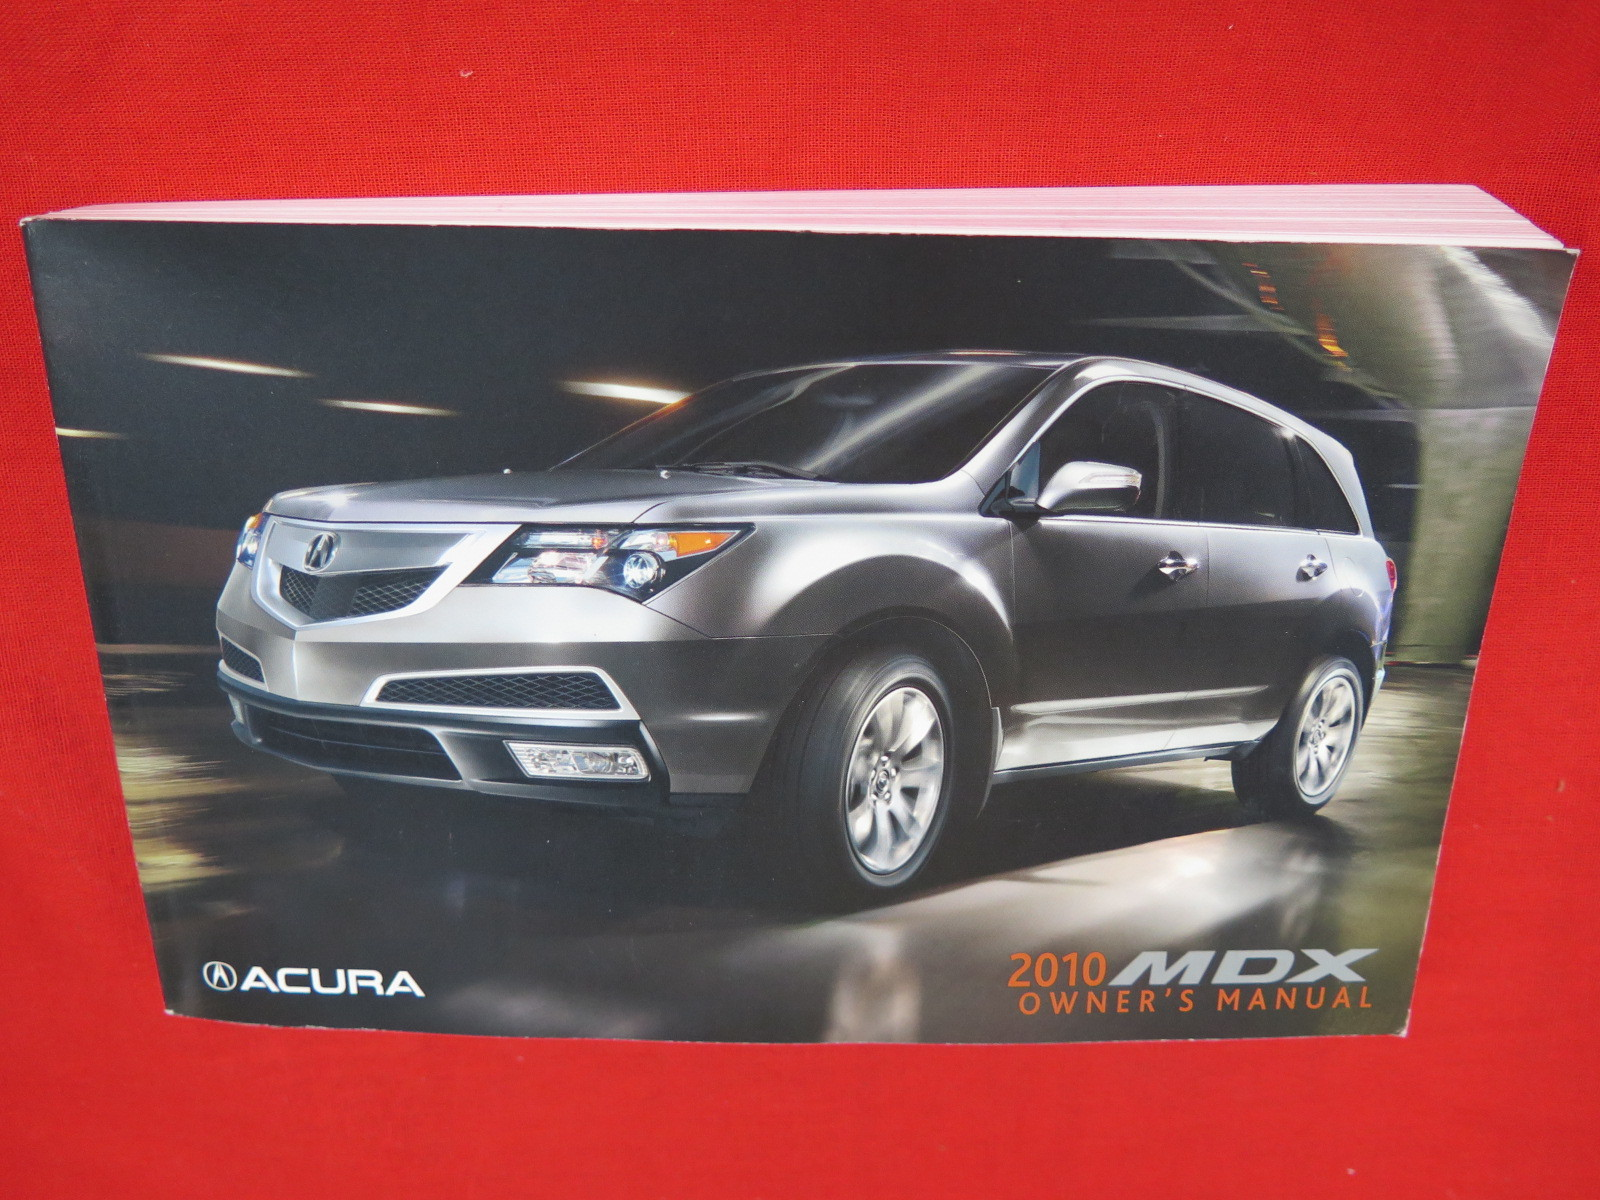 2010 Acura MDX Owners Manual Guide Book